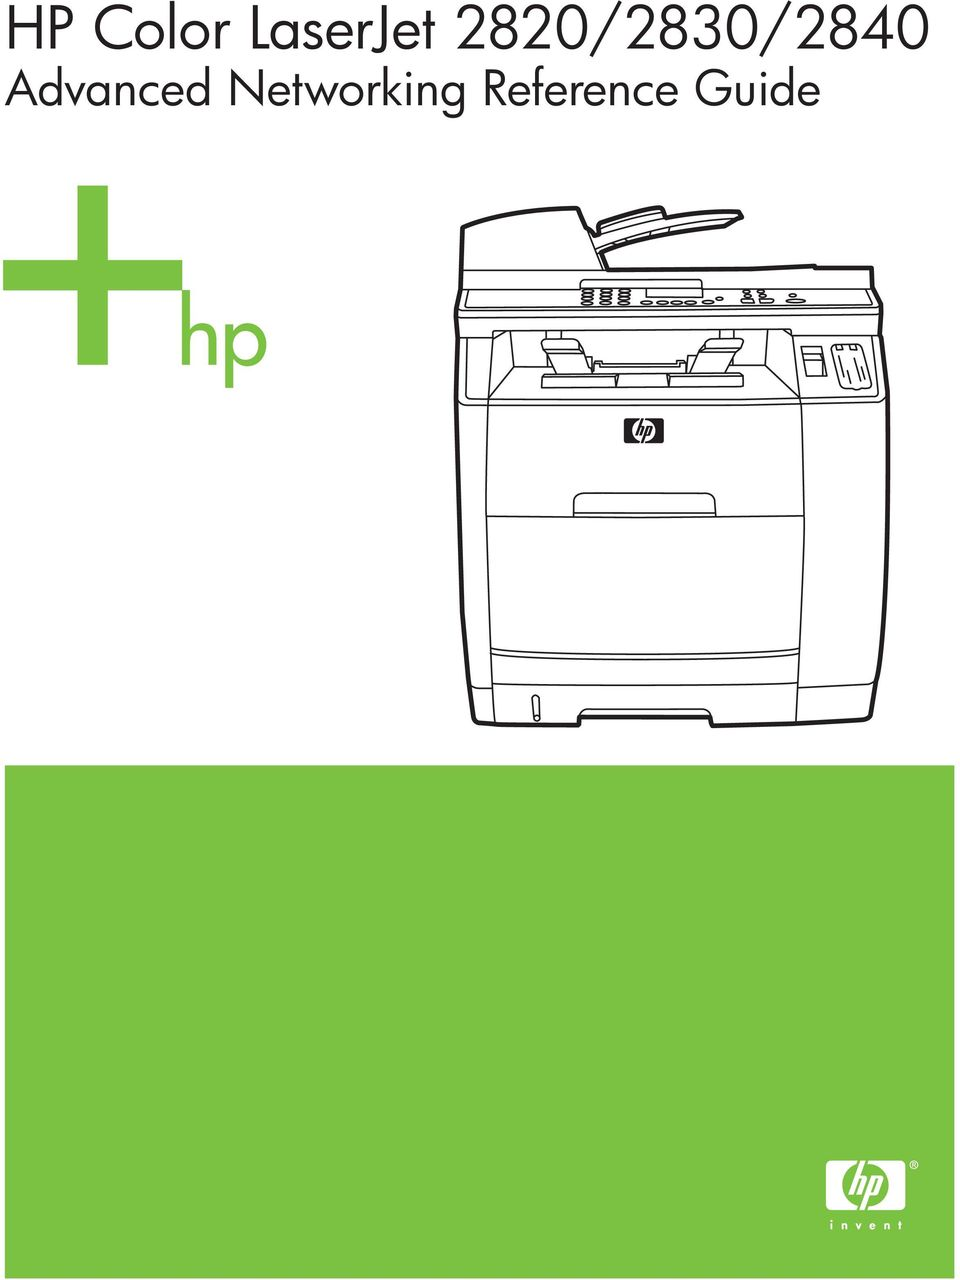 1 HP Color LaserJet 2820/2830/2840 Advanced Networking Reference Guide. 2820 /2830/2840